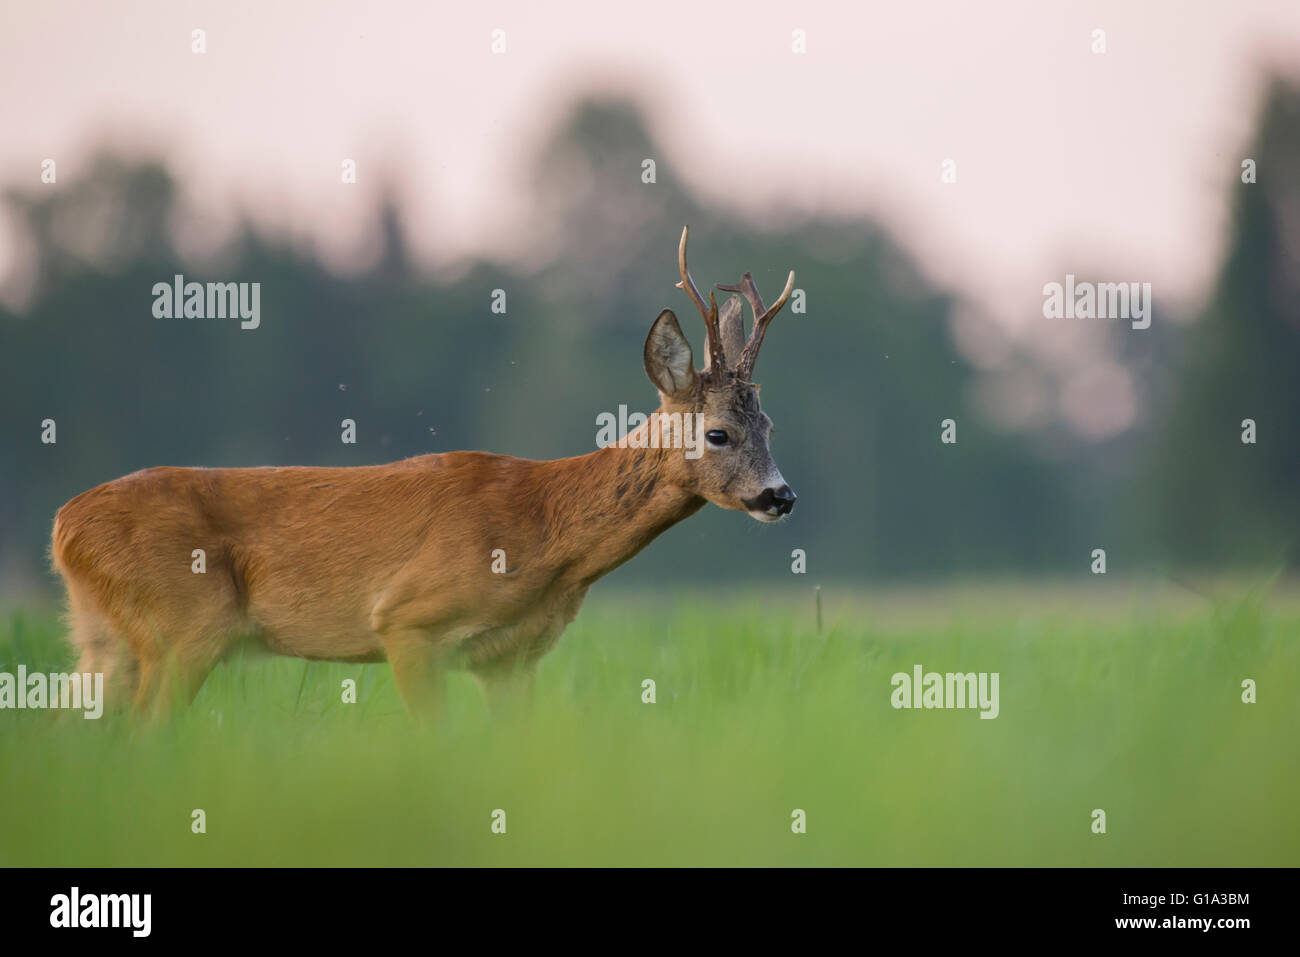 Roe deer on the meadow - Stock Image